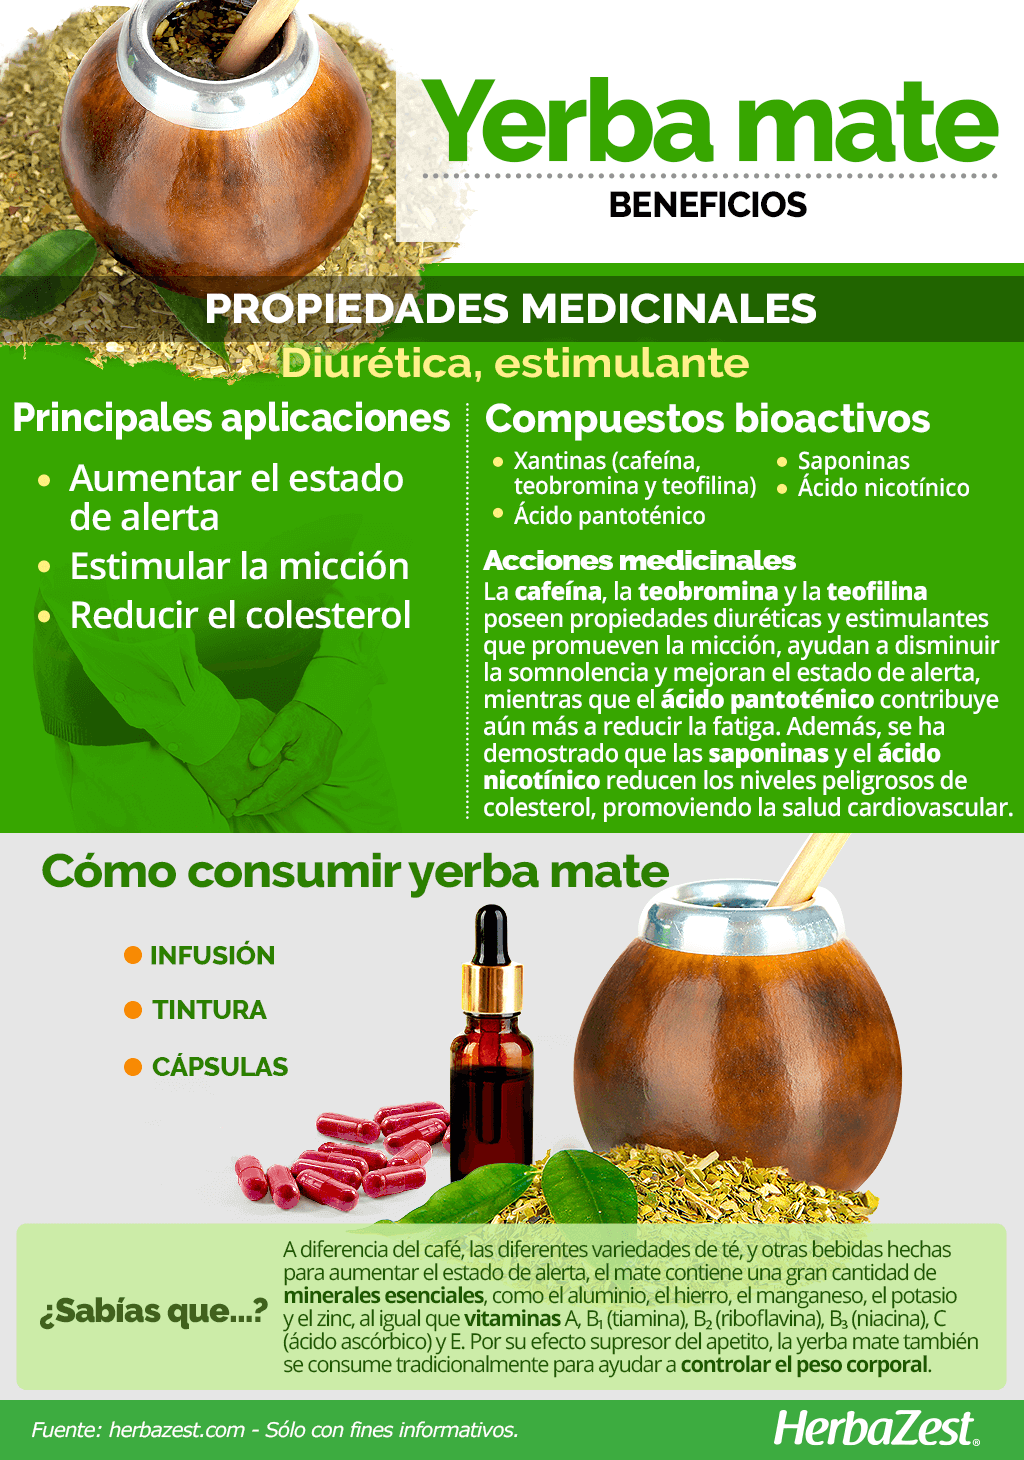 Beneficios de la yerba mate